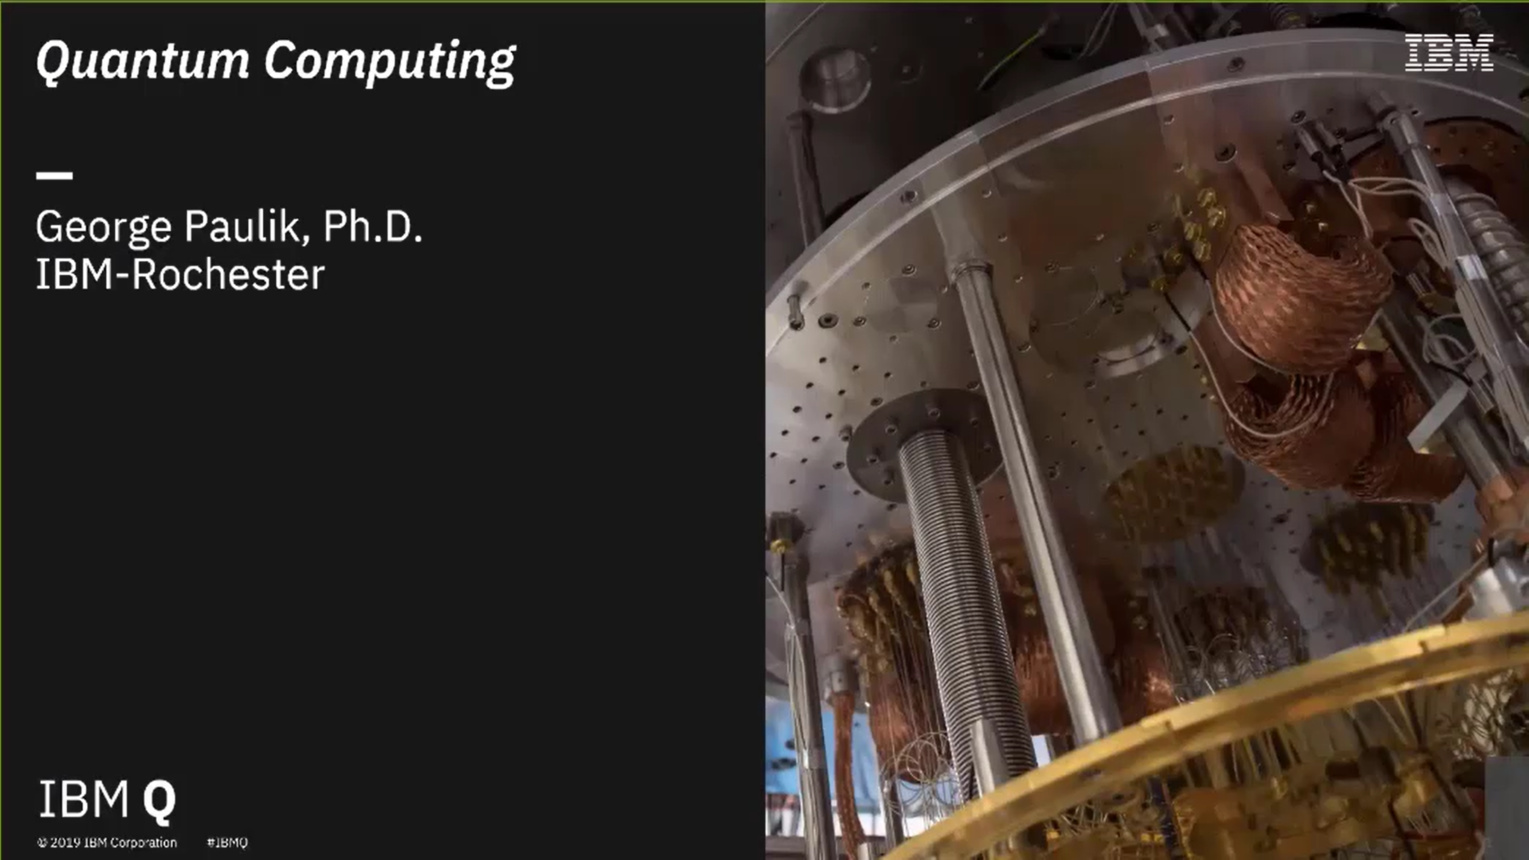 Quantum Computing & IBM Quantum Experience: An Introduction